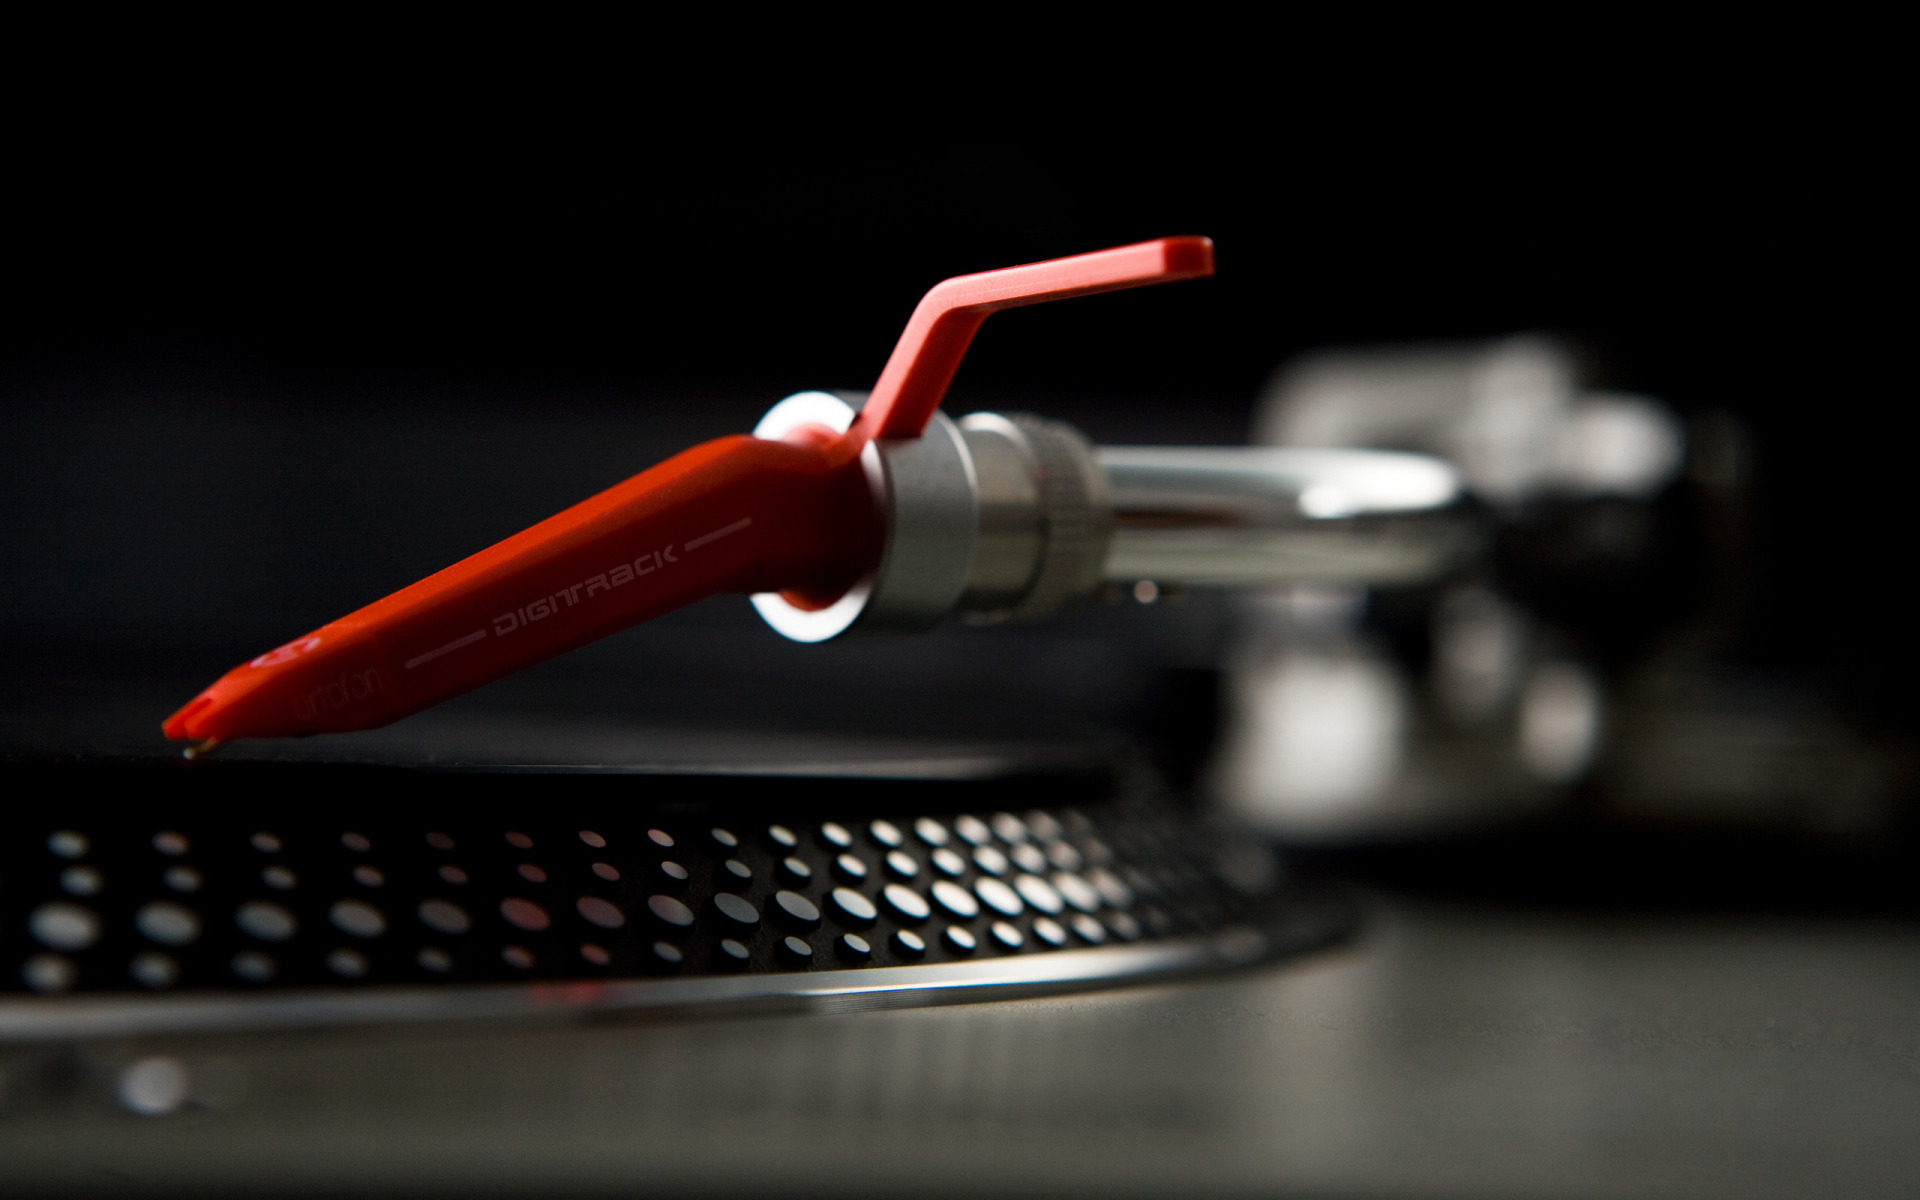 Turntable Wallpaper Wallpapersafari